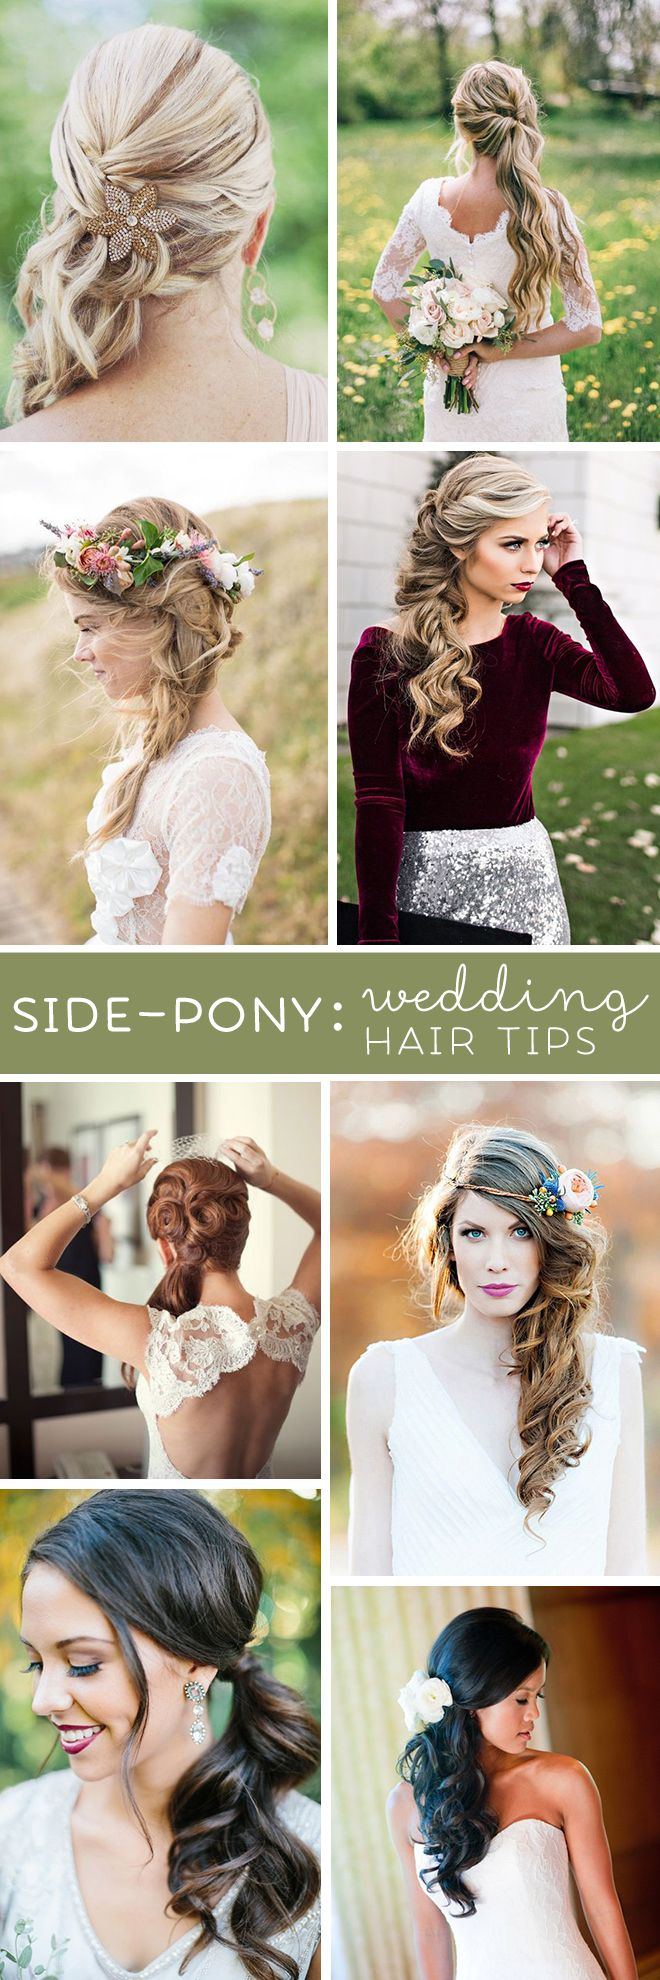 These are the absolute BEST wedding hair tips for wearing a side ponytail style!